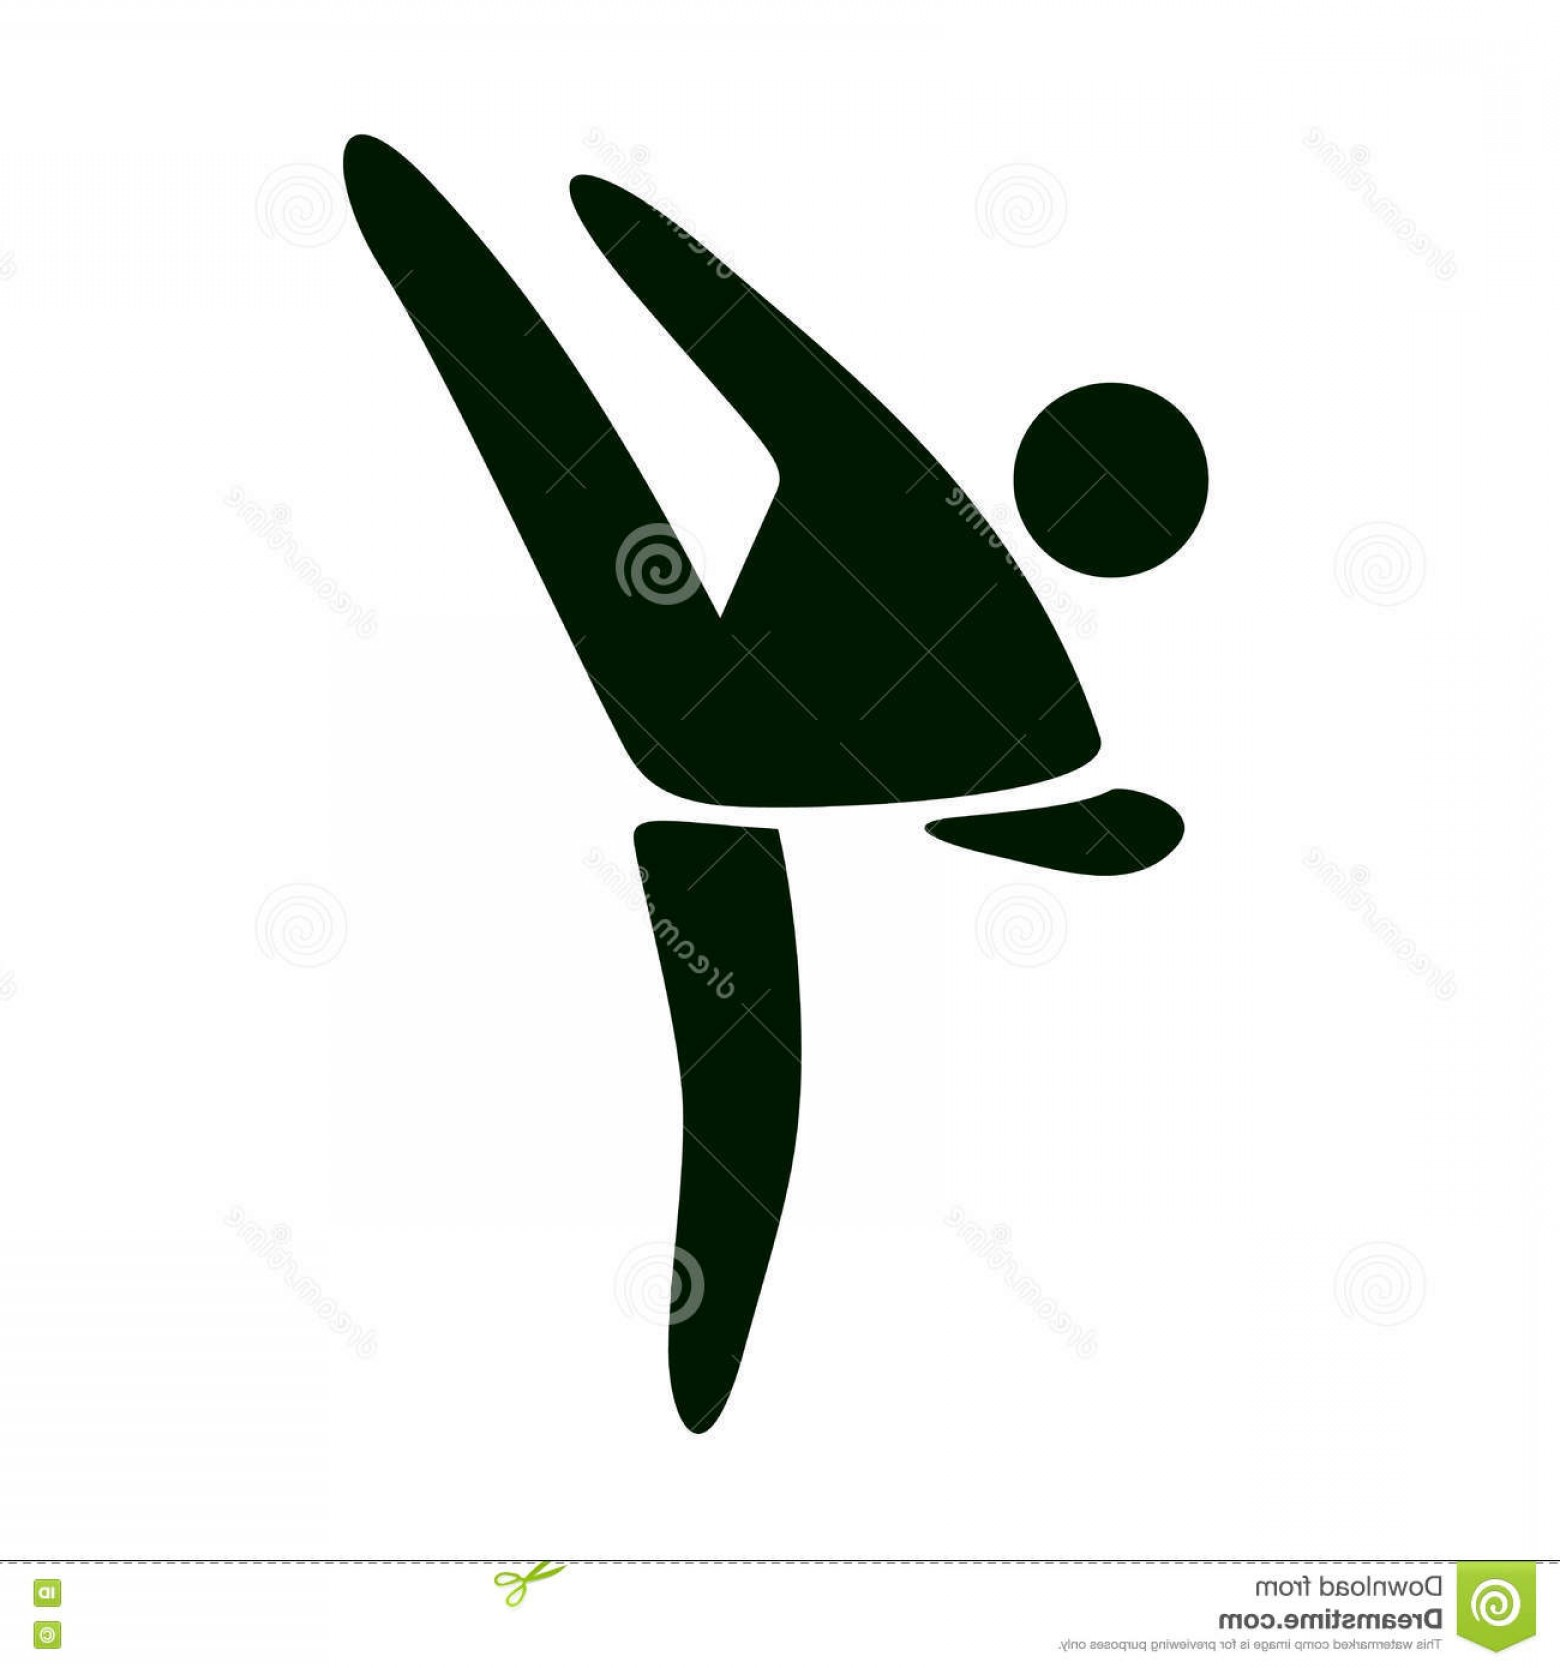 Karate Vector: Stock Illustration Karate Kick Vector Icon White Background Image